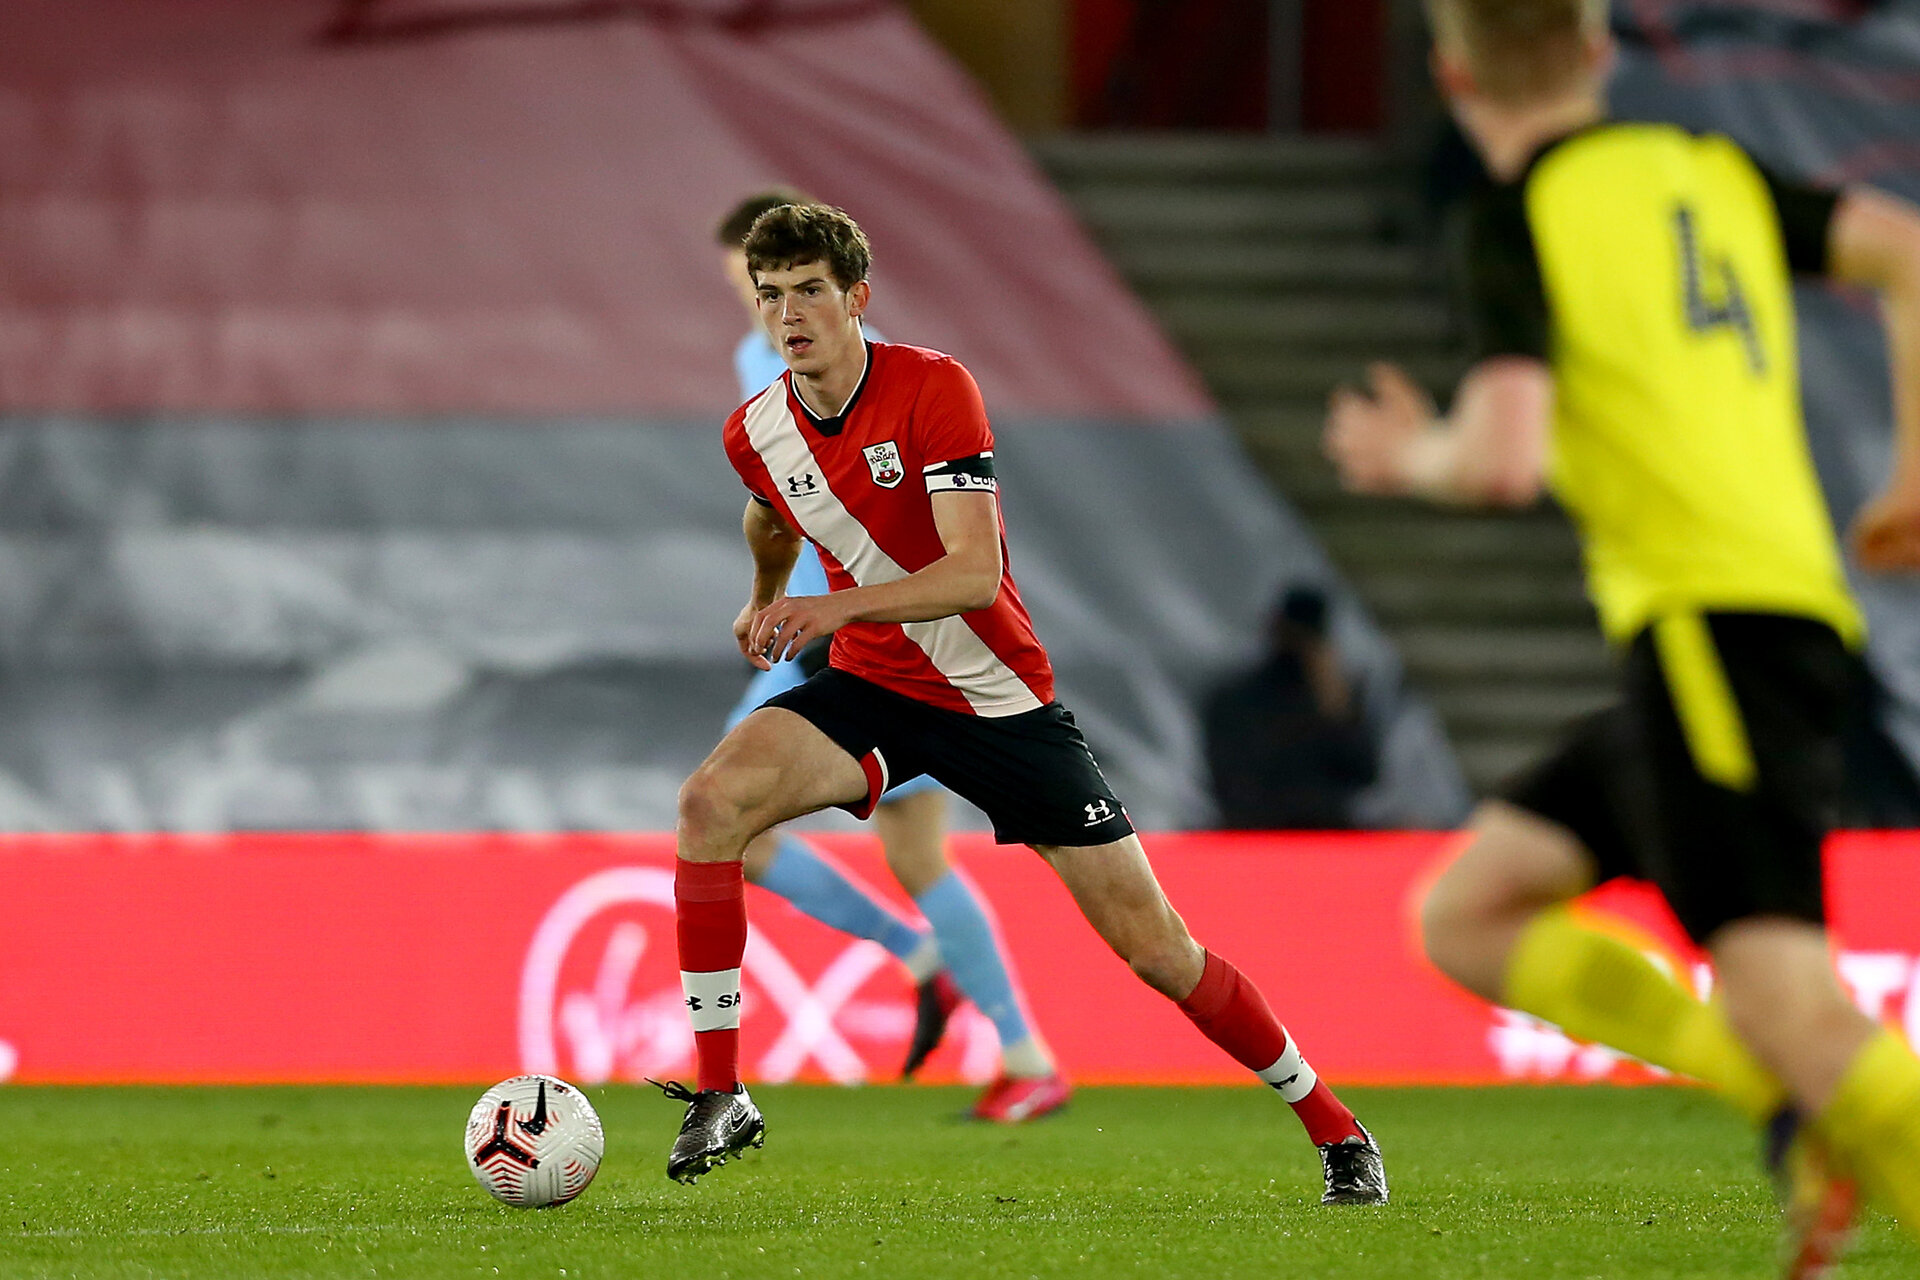 SOUTHAMPTON, ENGLAND - MARCH 23:  during the FA Youth Cup fourth round match between Southampton and Burton Albion at St Mary's Stadium on March 23, 2021 in Southampton, England. (Photo by Isabelle Field/Southampton FC via Getty Images)